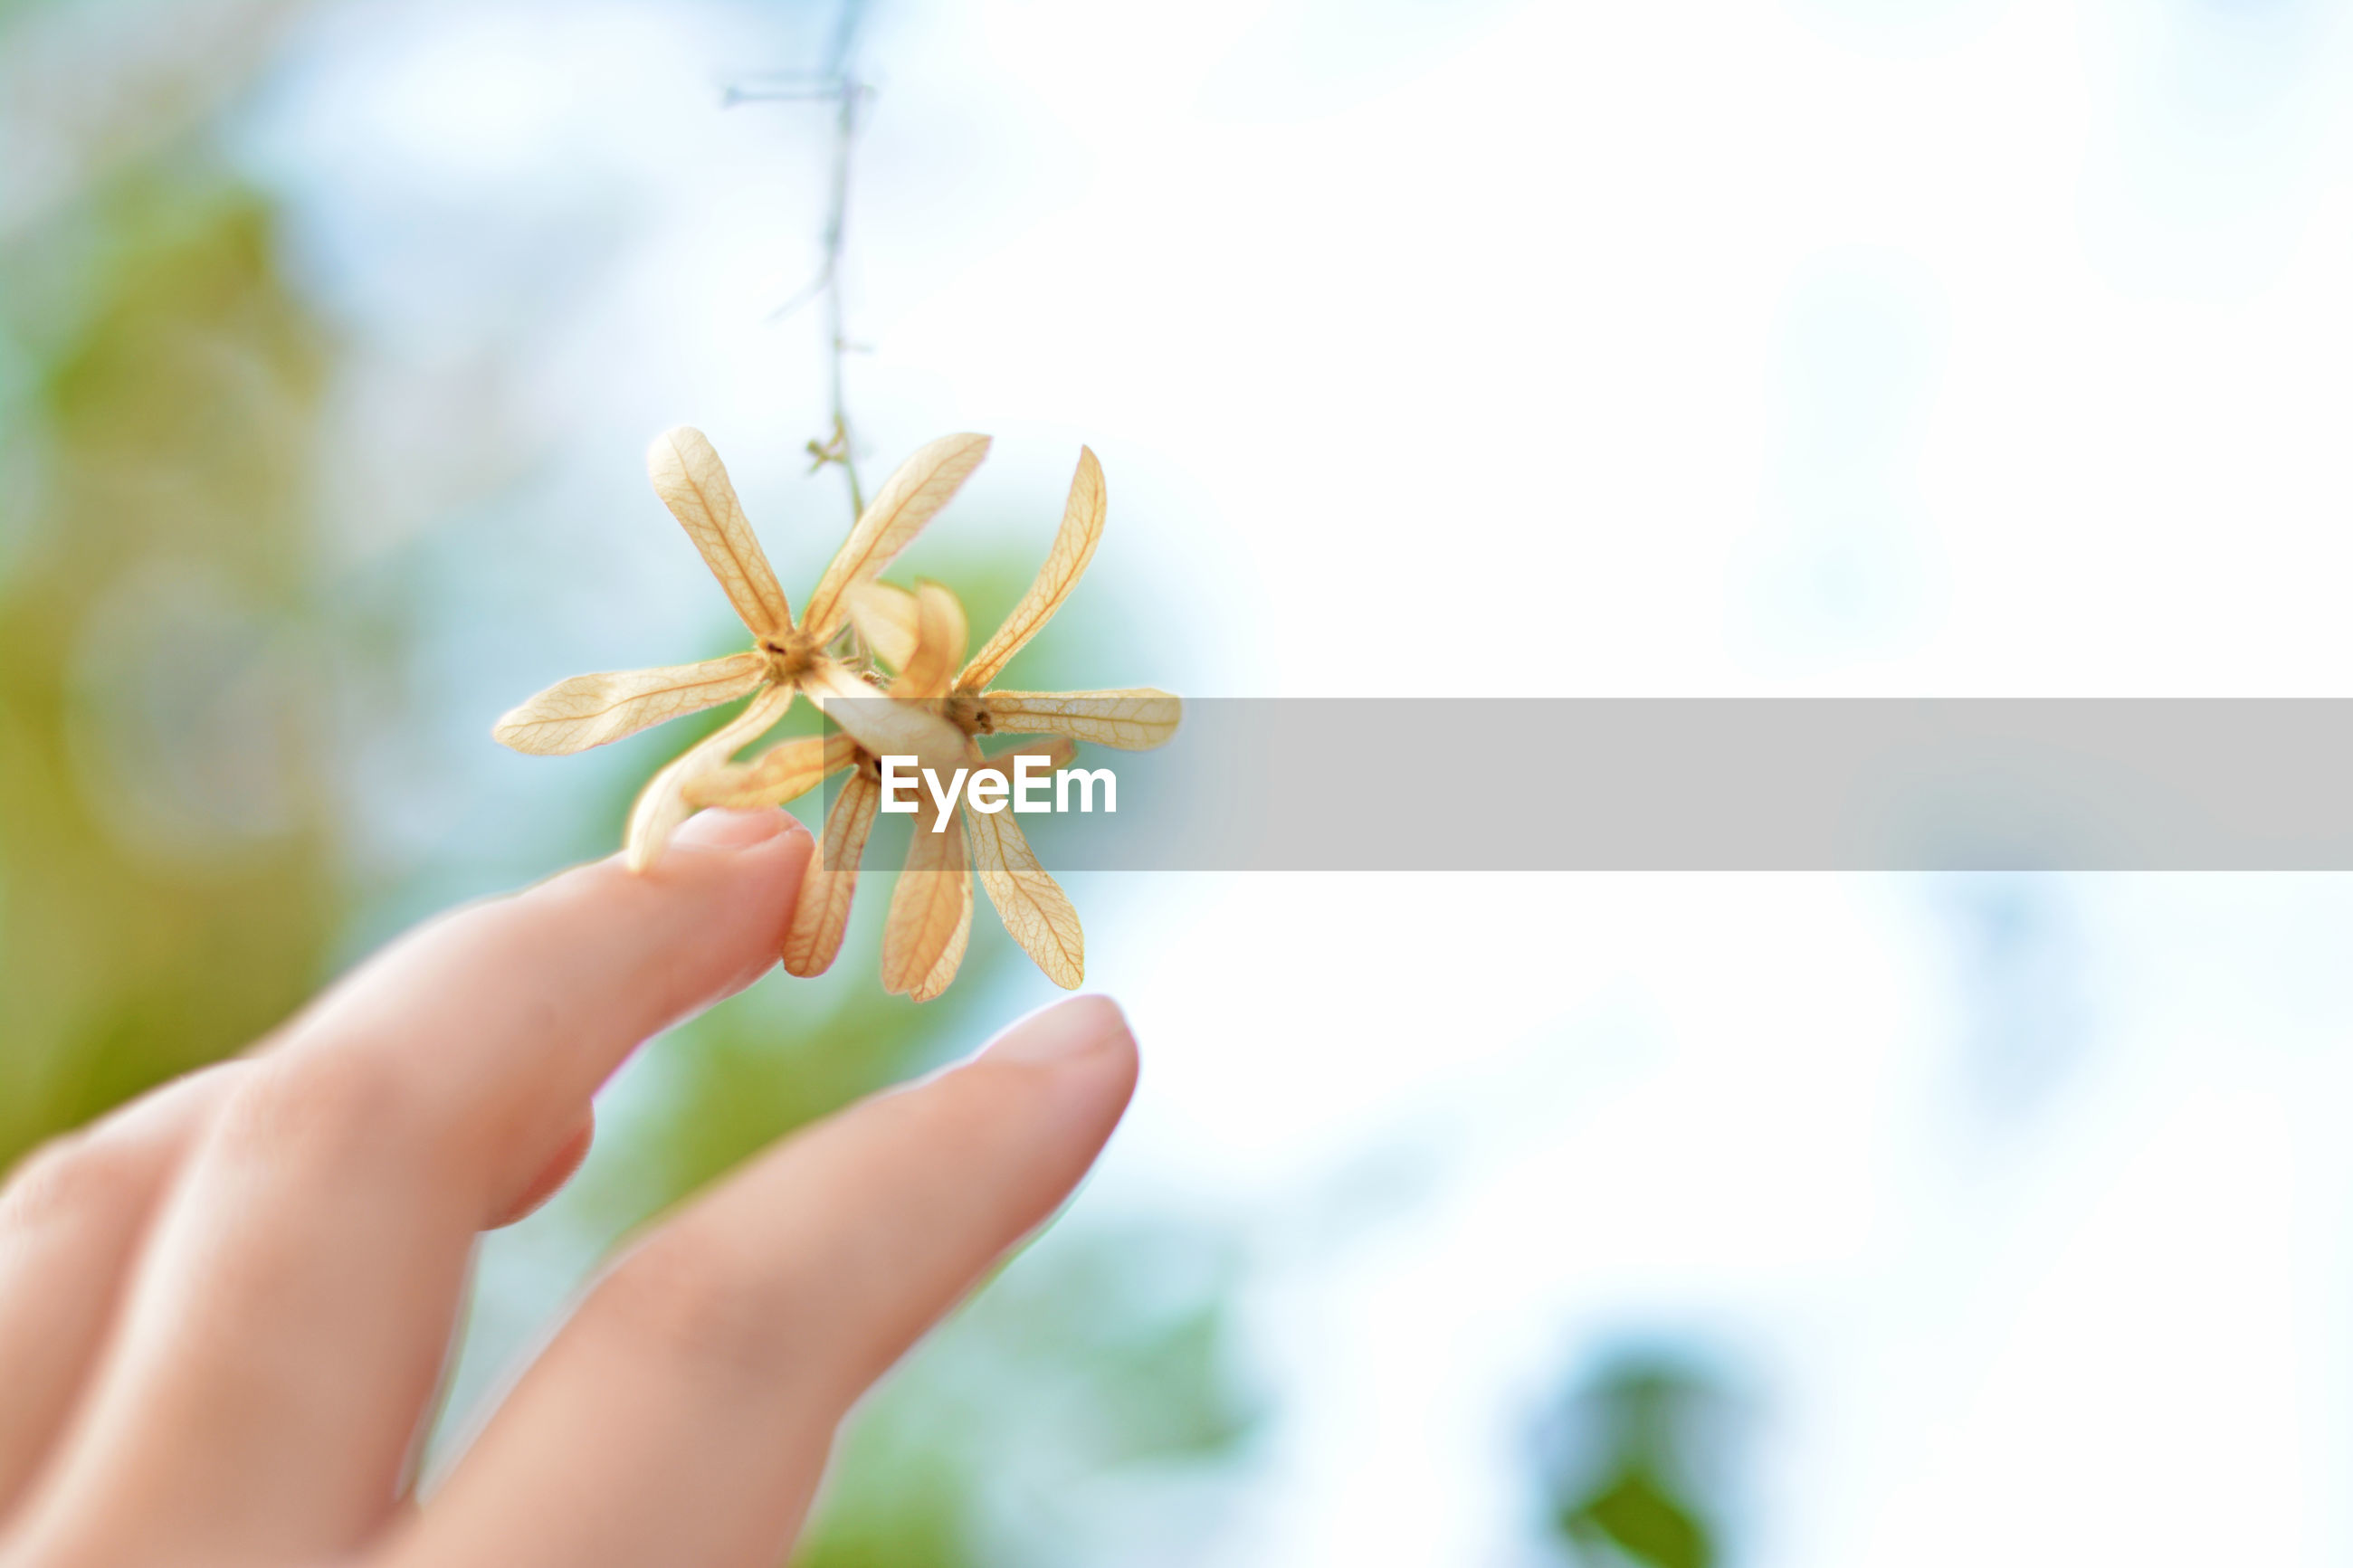 Close-up of hand touching flowers